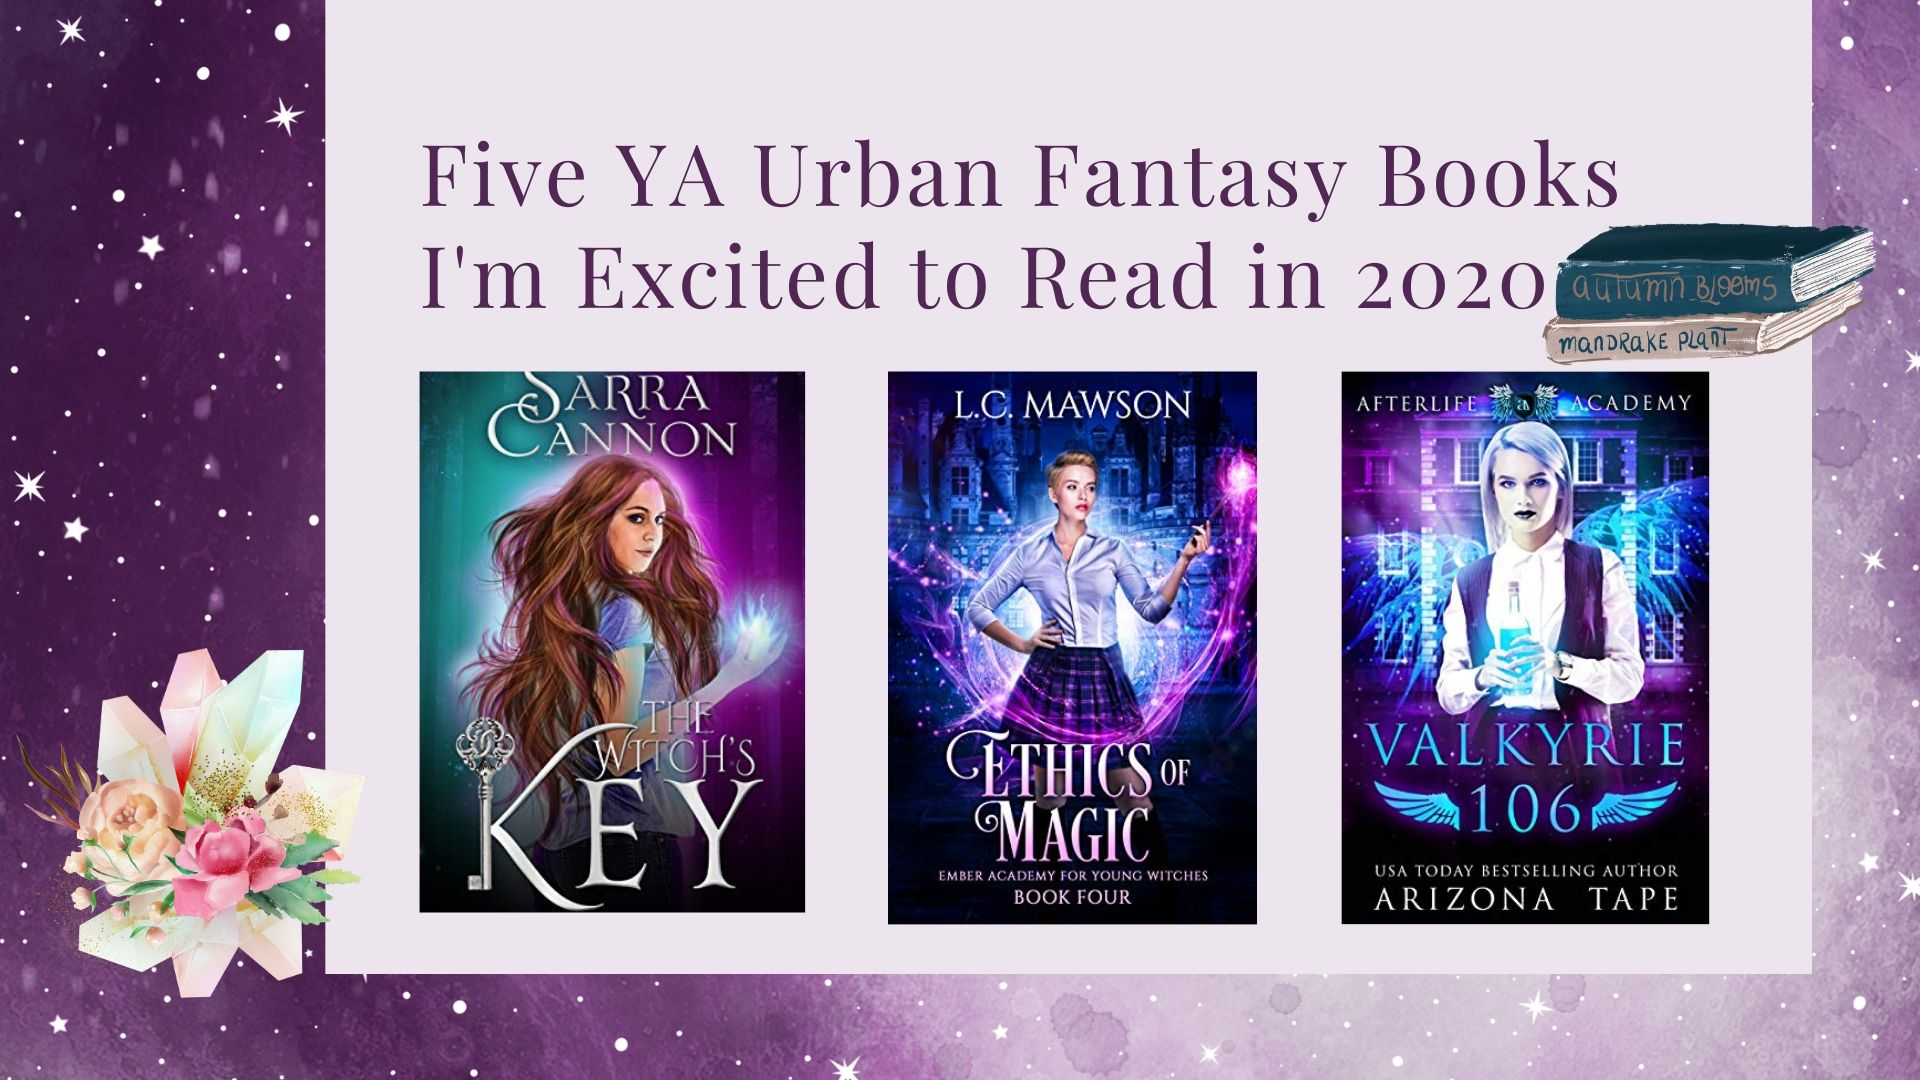 5 YA Urban Fantasy Books I'm Excited to Read in 2020